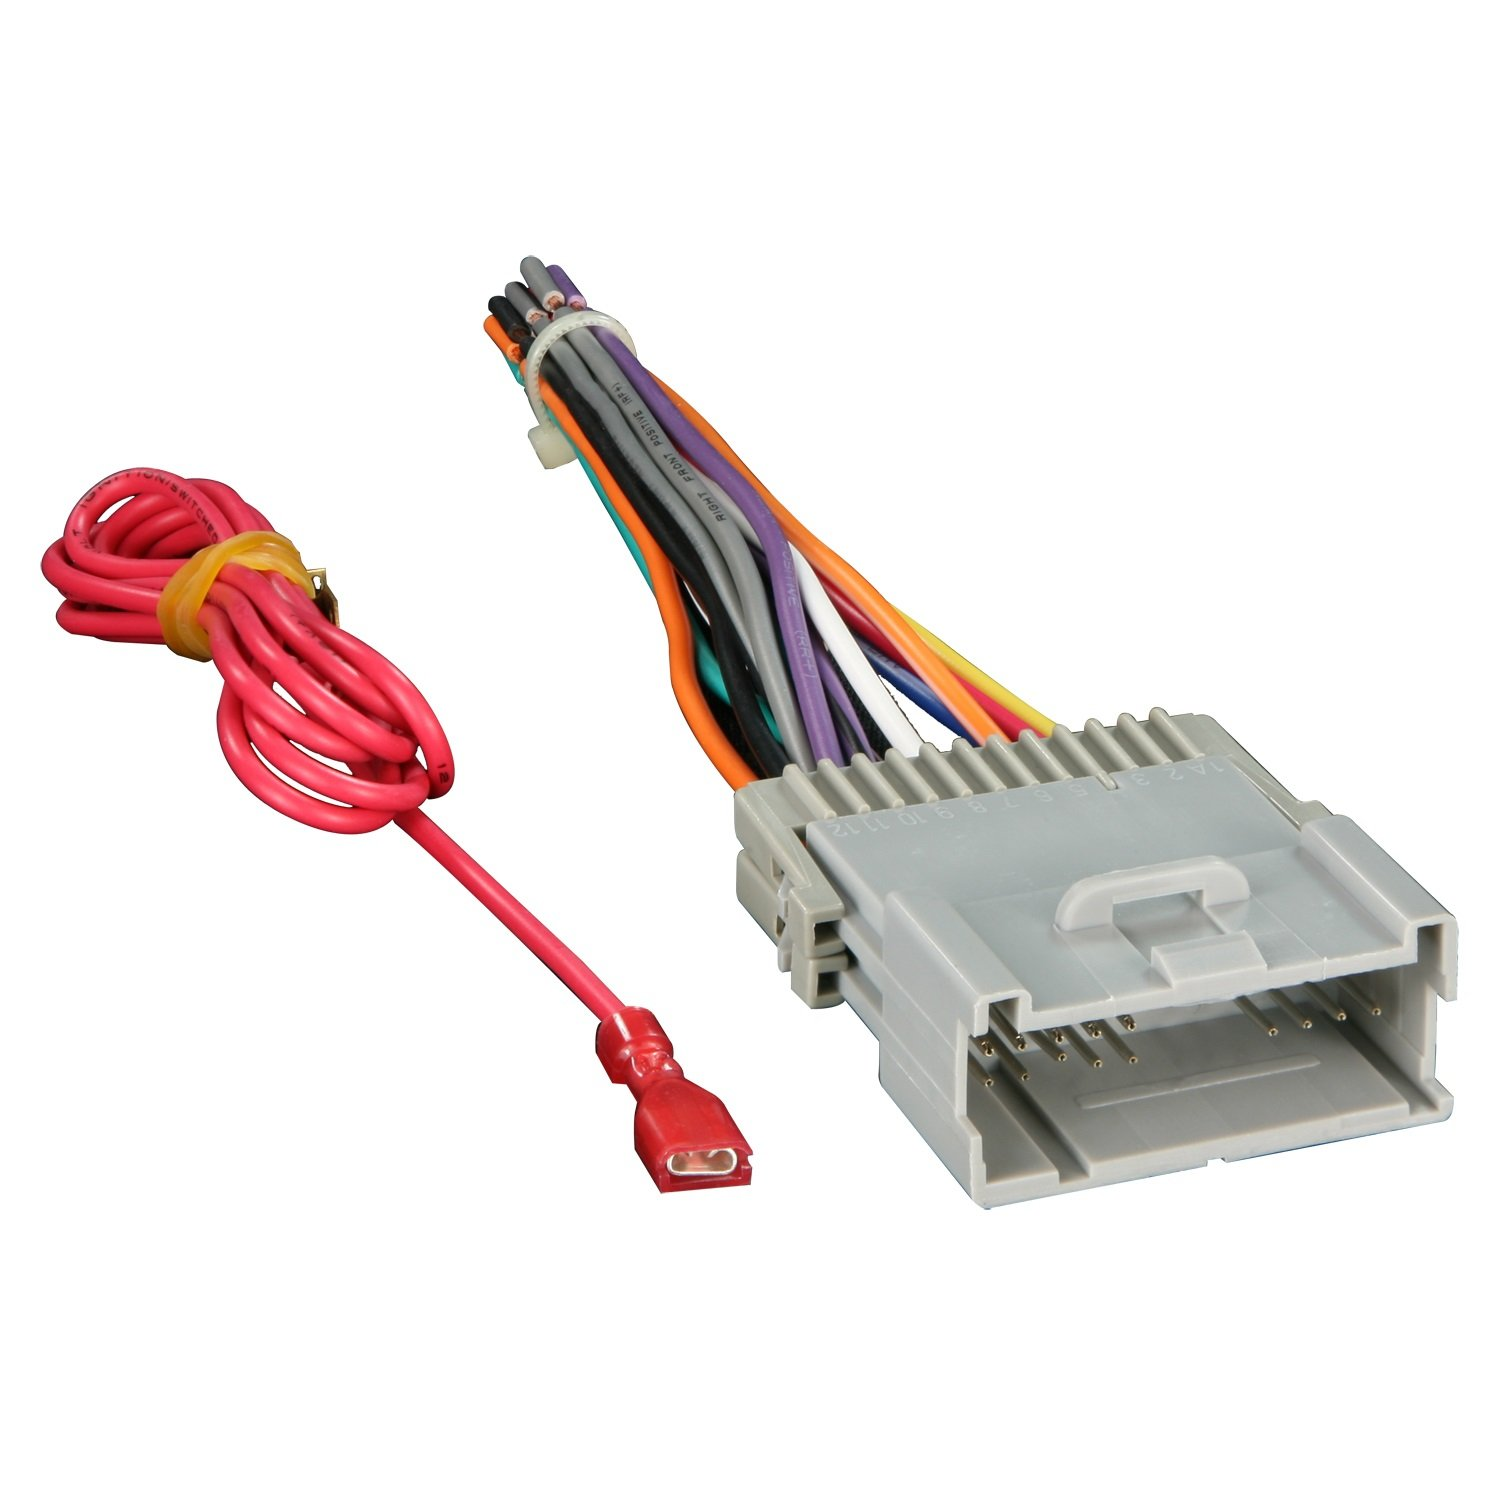 61eewxp9orL._SL1500_ amazon com metra 70 2003 radio wiring harness for gm 98 08 2004 chevy venture car audio wiring harness at alyssarenee.co